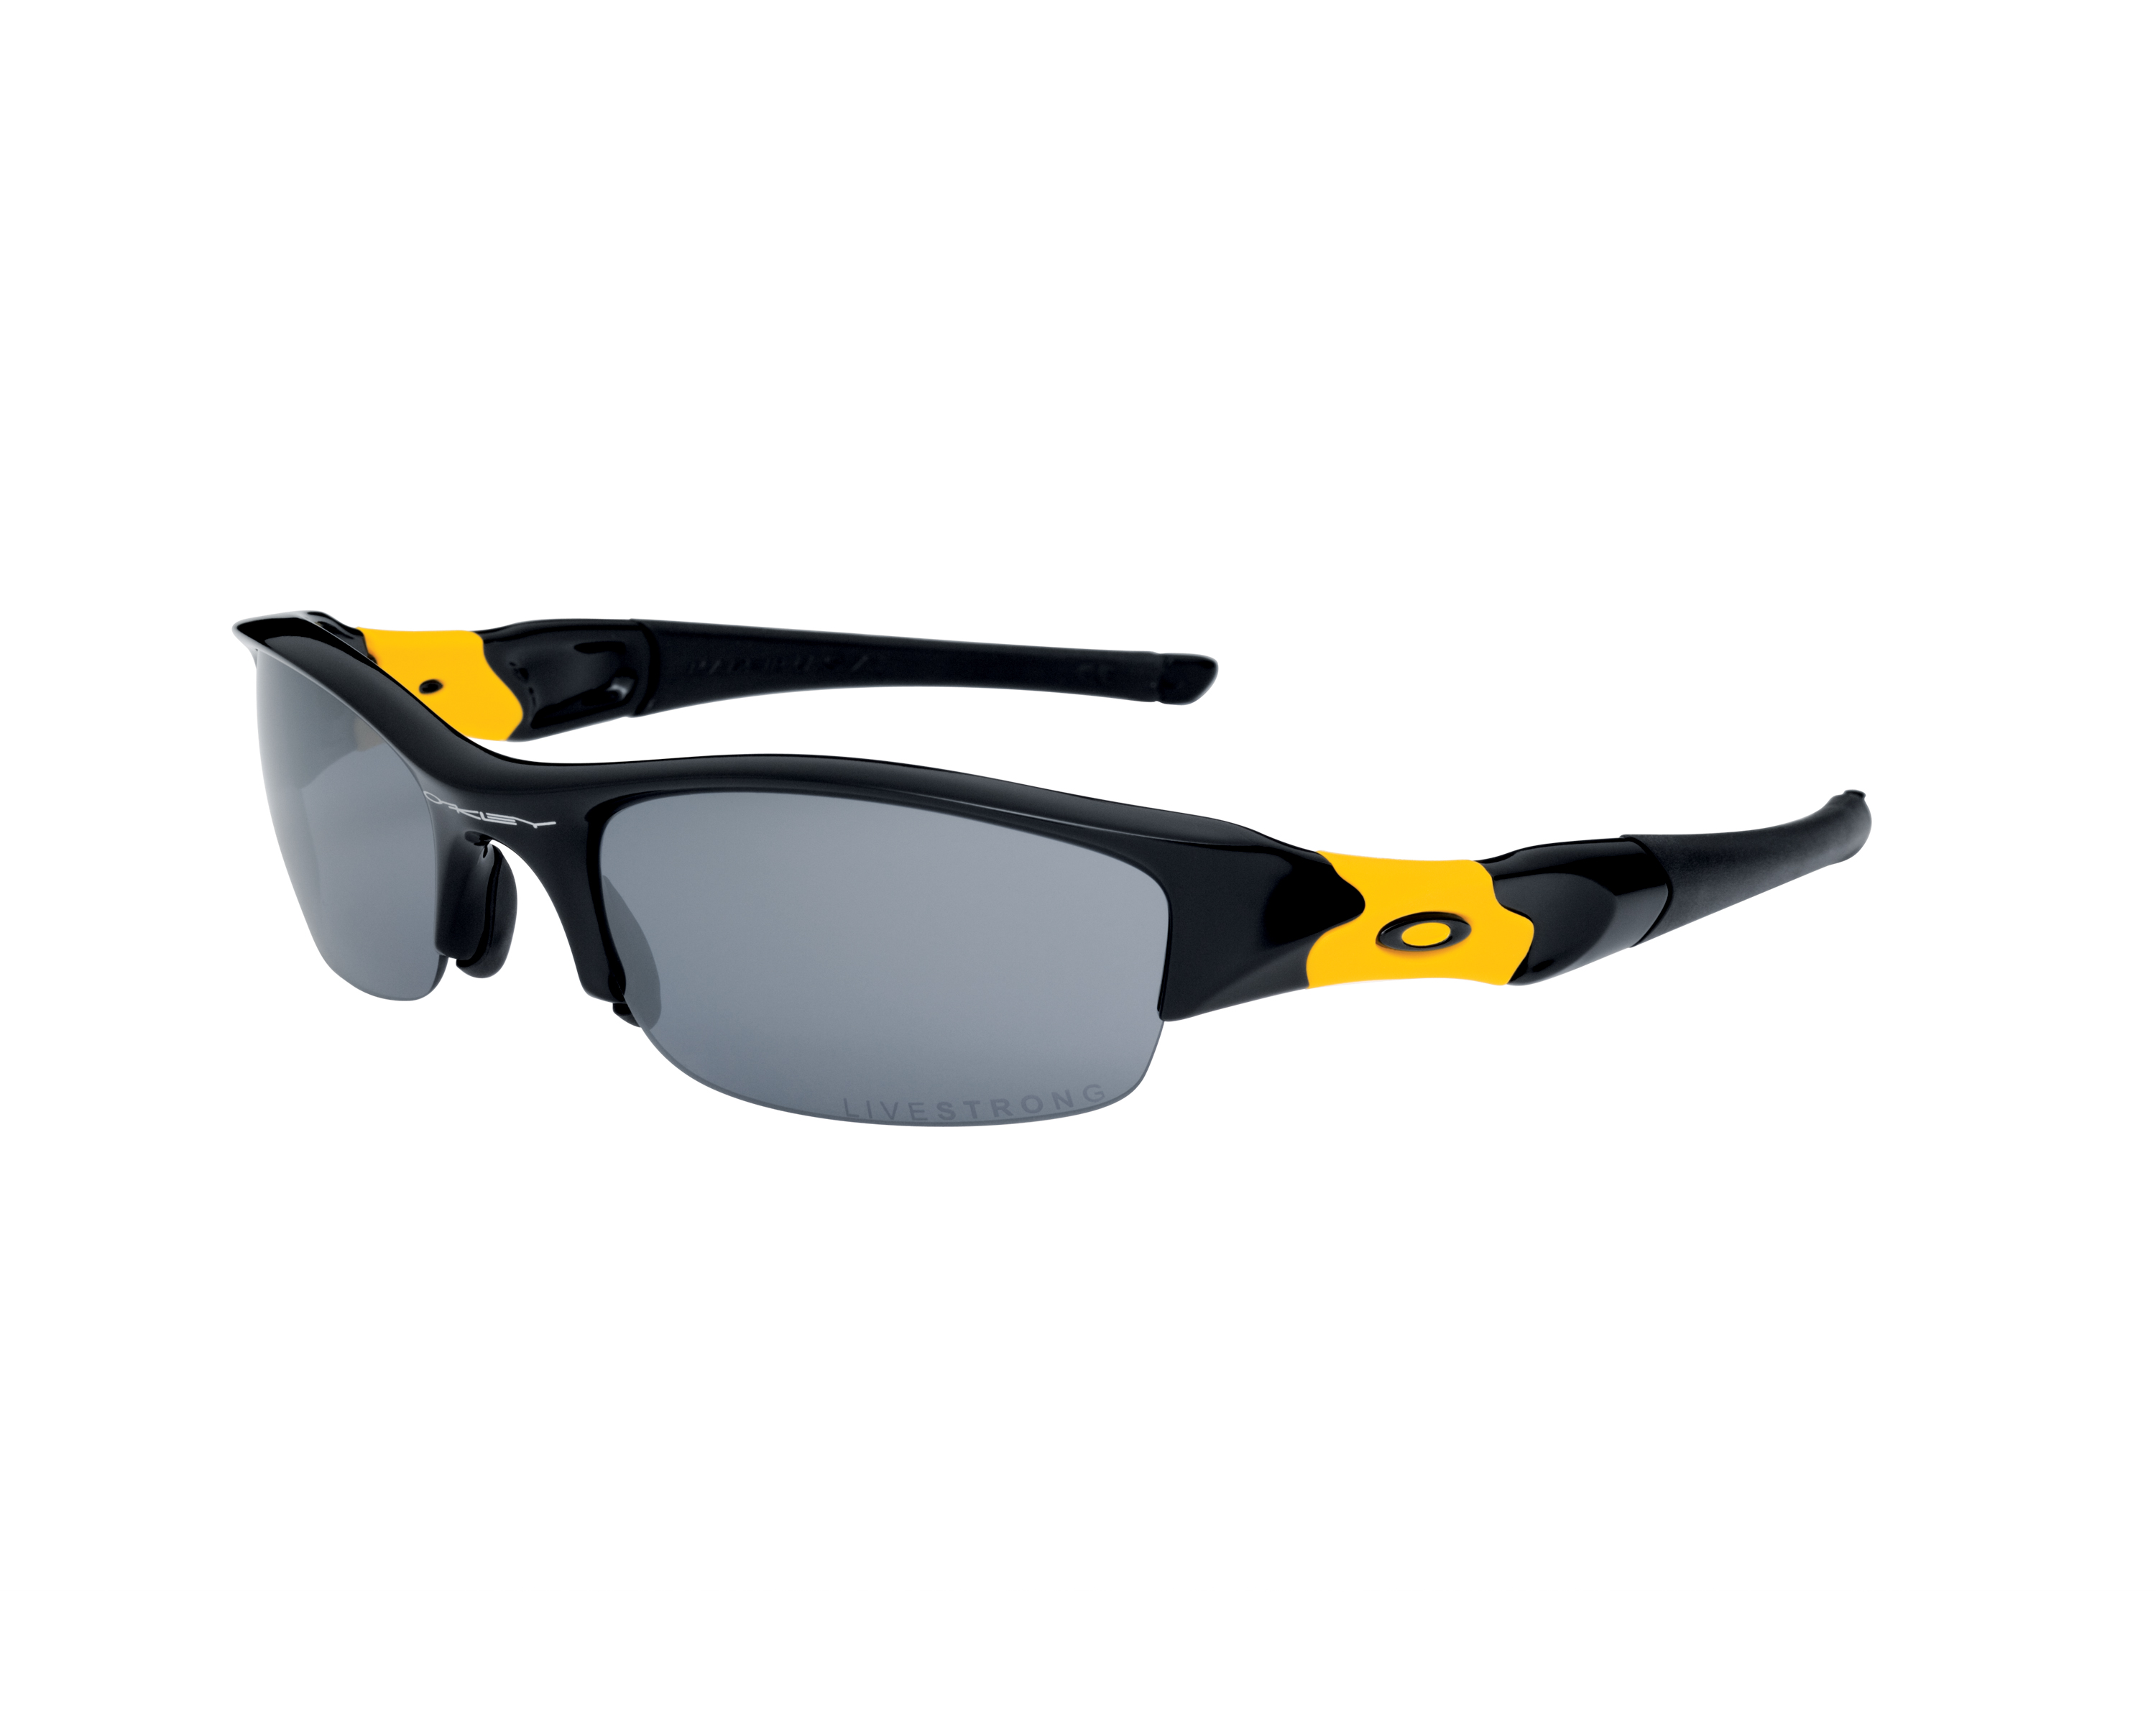 Oakley Lance Armstrong Sunglasses